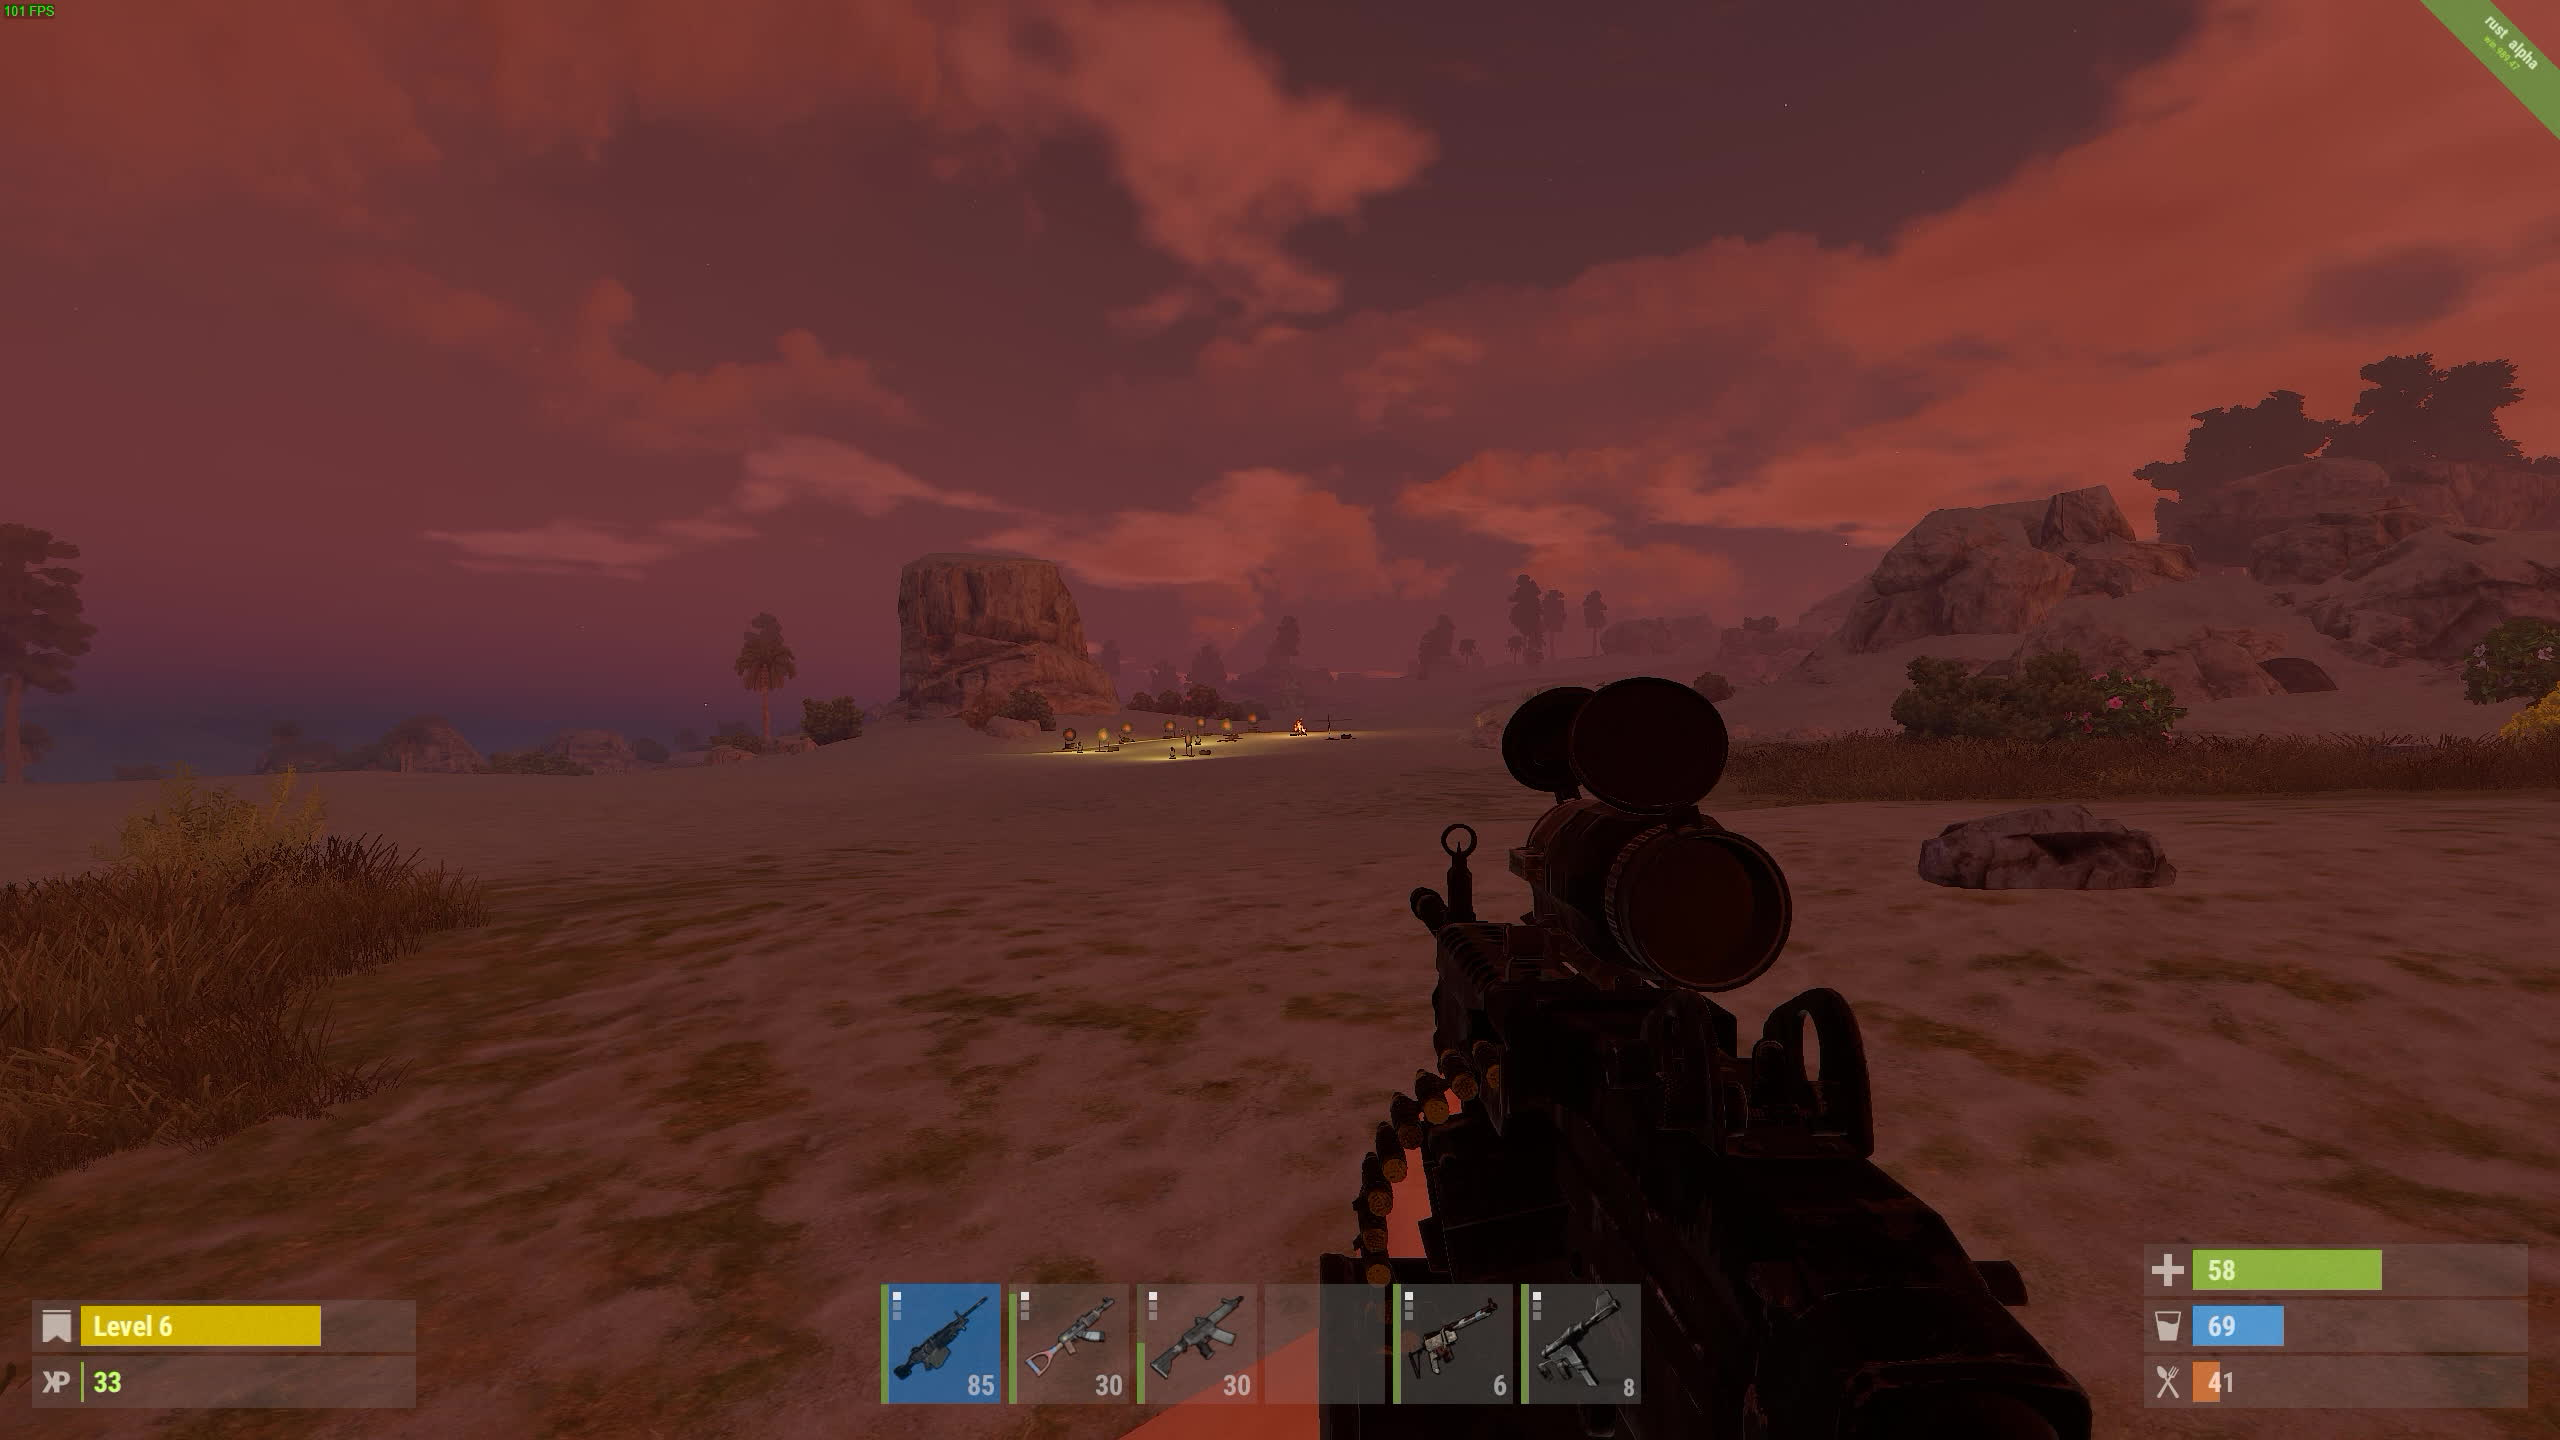 playrust, Rust: LR300 sucks GIFs